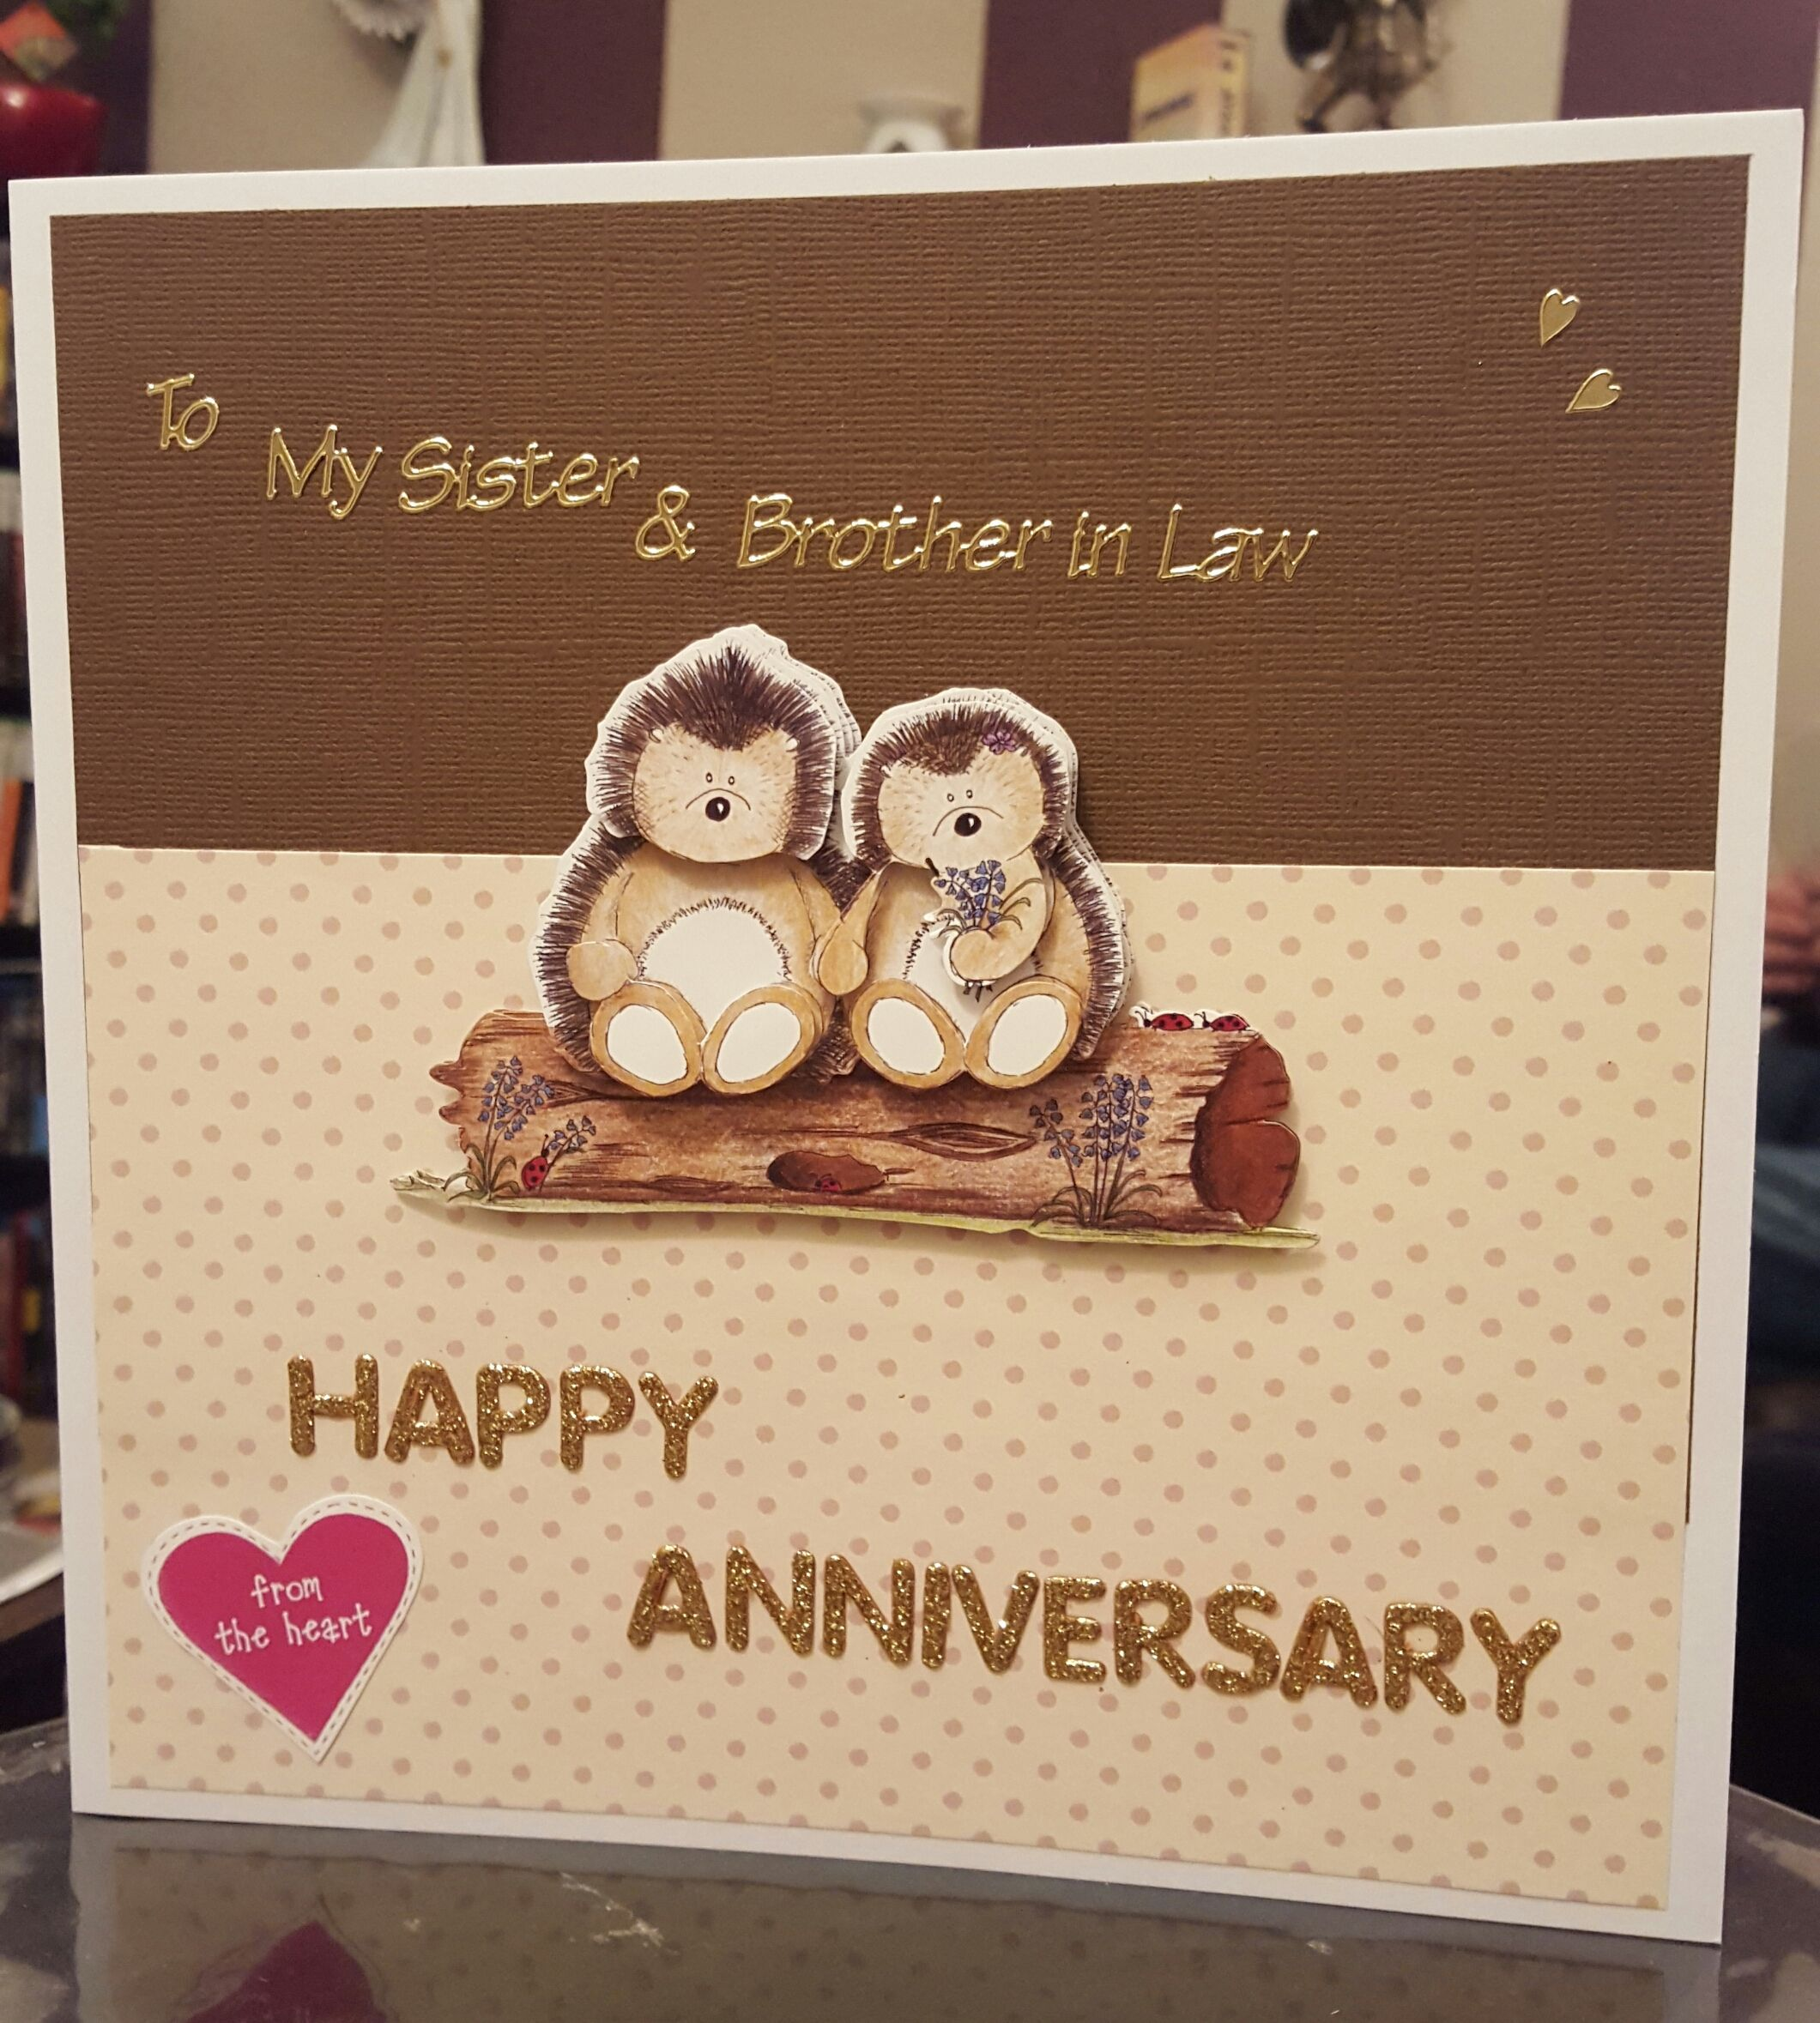 Hedgehog wedding anniversary card sister brother in